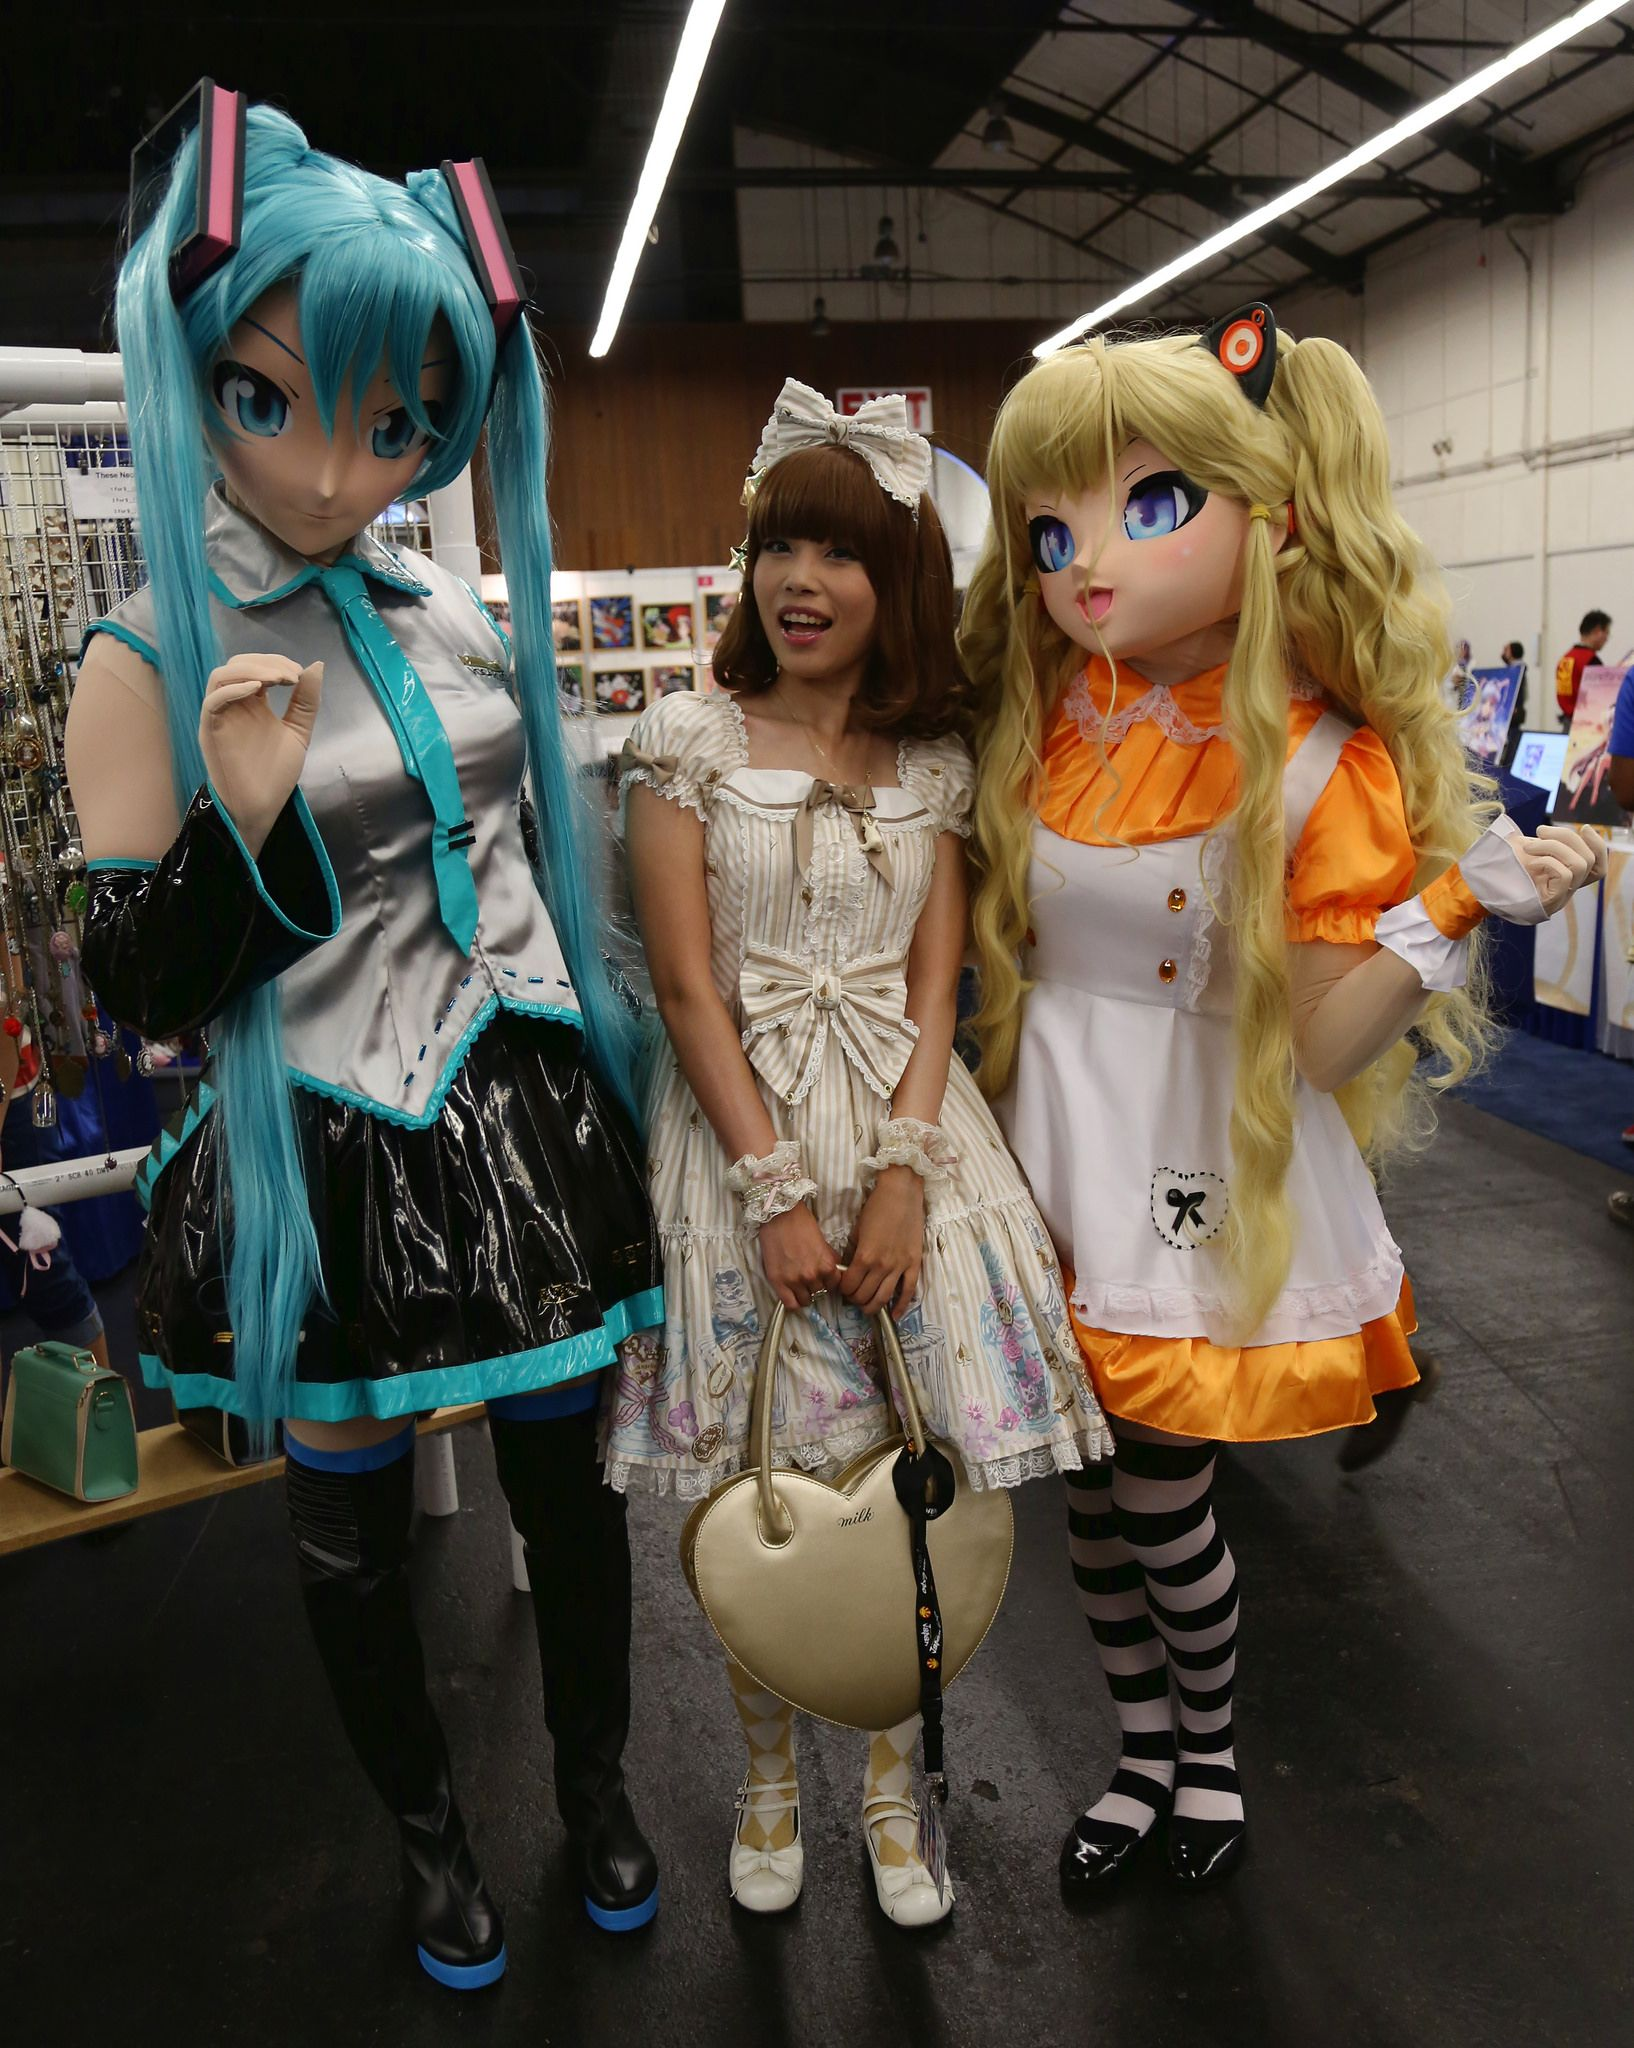 Hatsune Miku (初音ミク) and SeeU (시유, Korean), from the voice